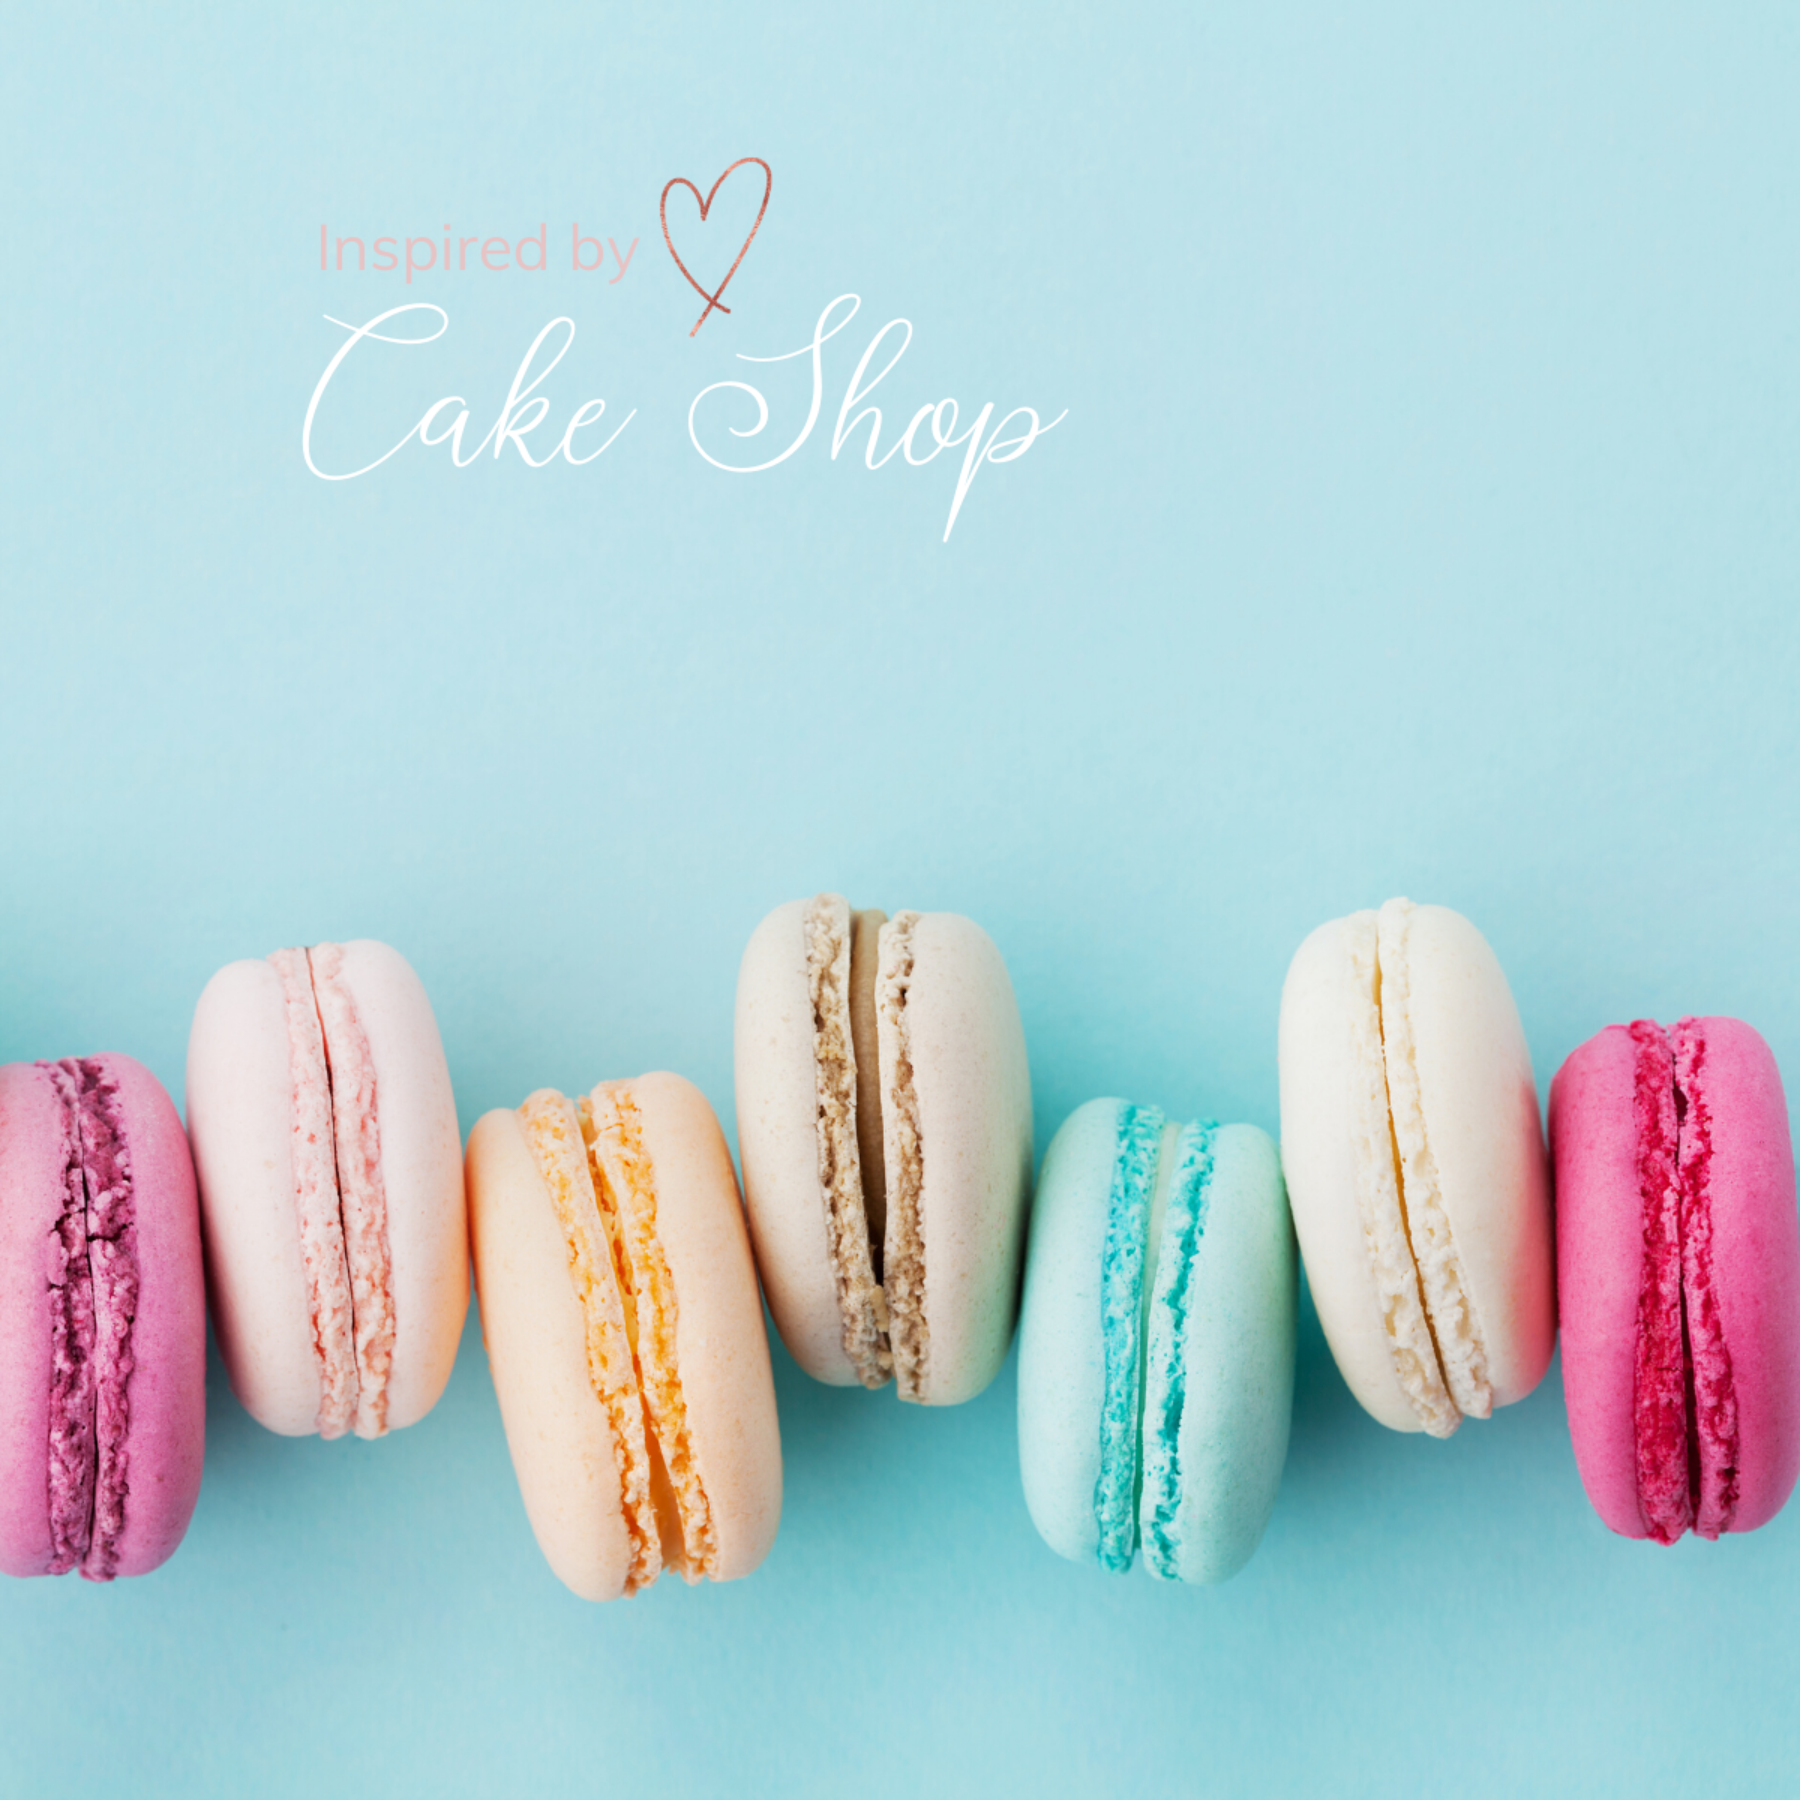 Cake Shop scented wax melts